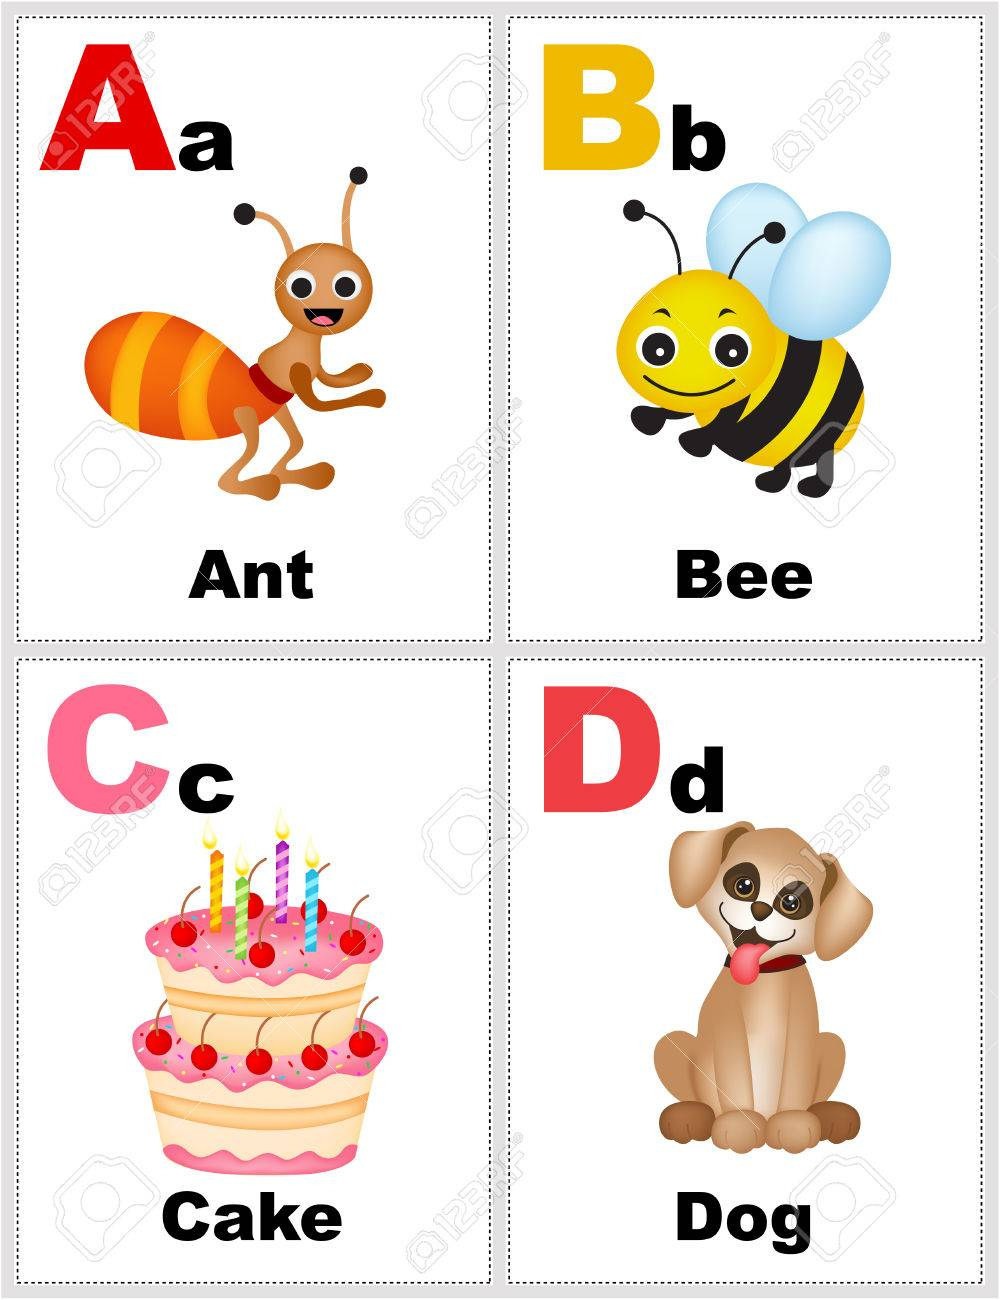 Alphabet Printable Flashcards Collection With Letter A,b,c,d - Free Printable Alphabet Flash Cards